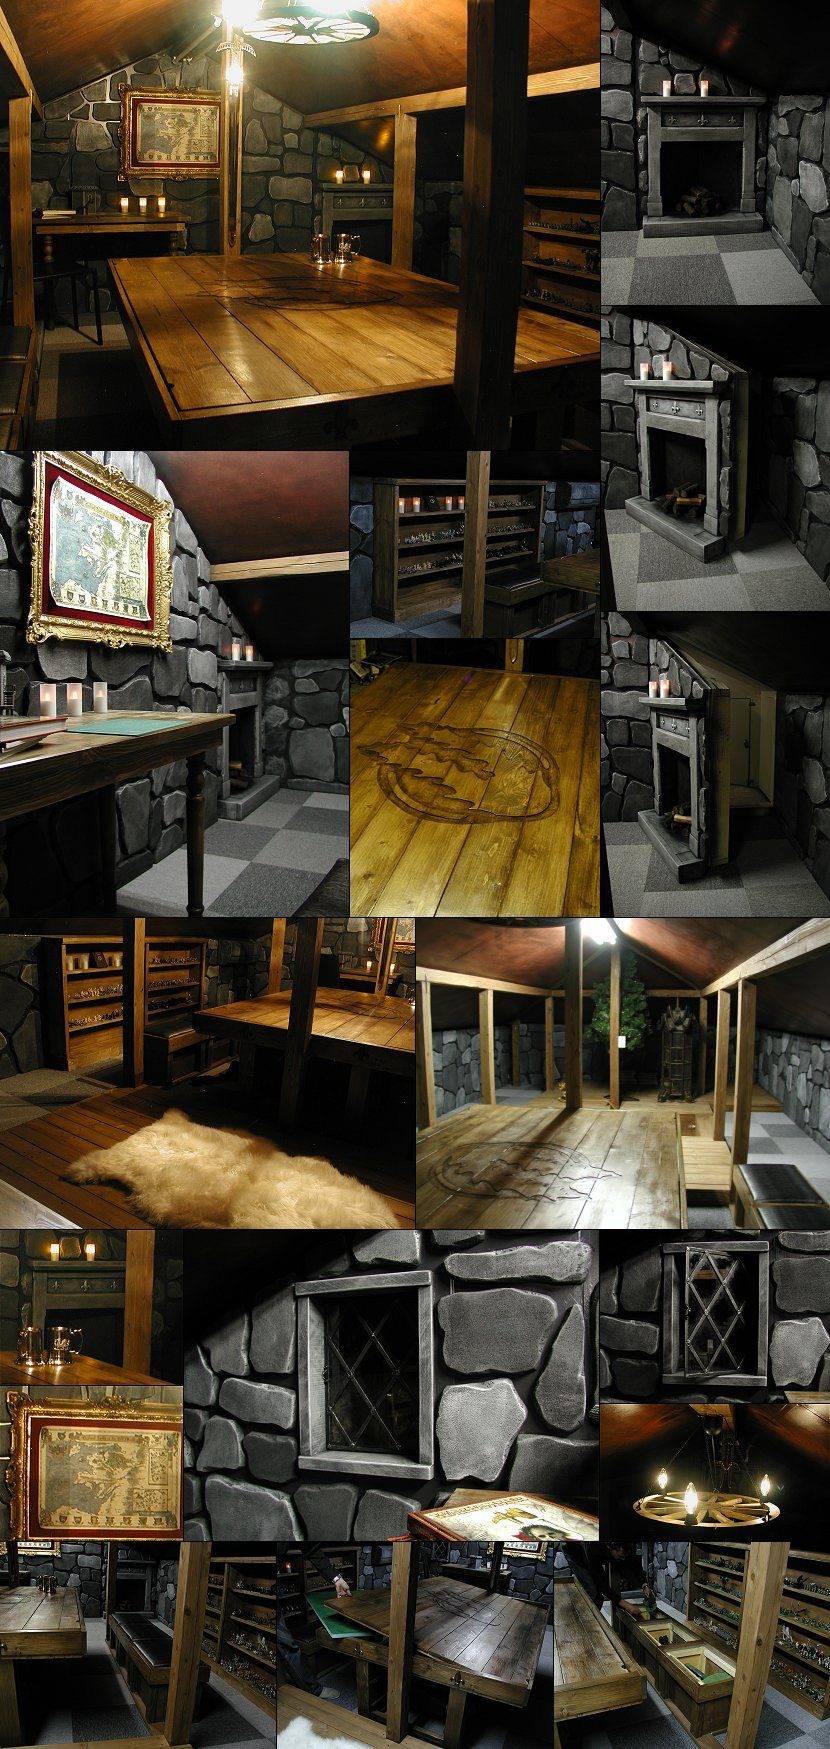 Basement Game Room Designs: I'd Love Our D&D Room To Look Like This.